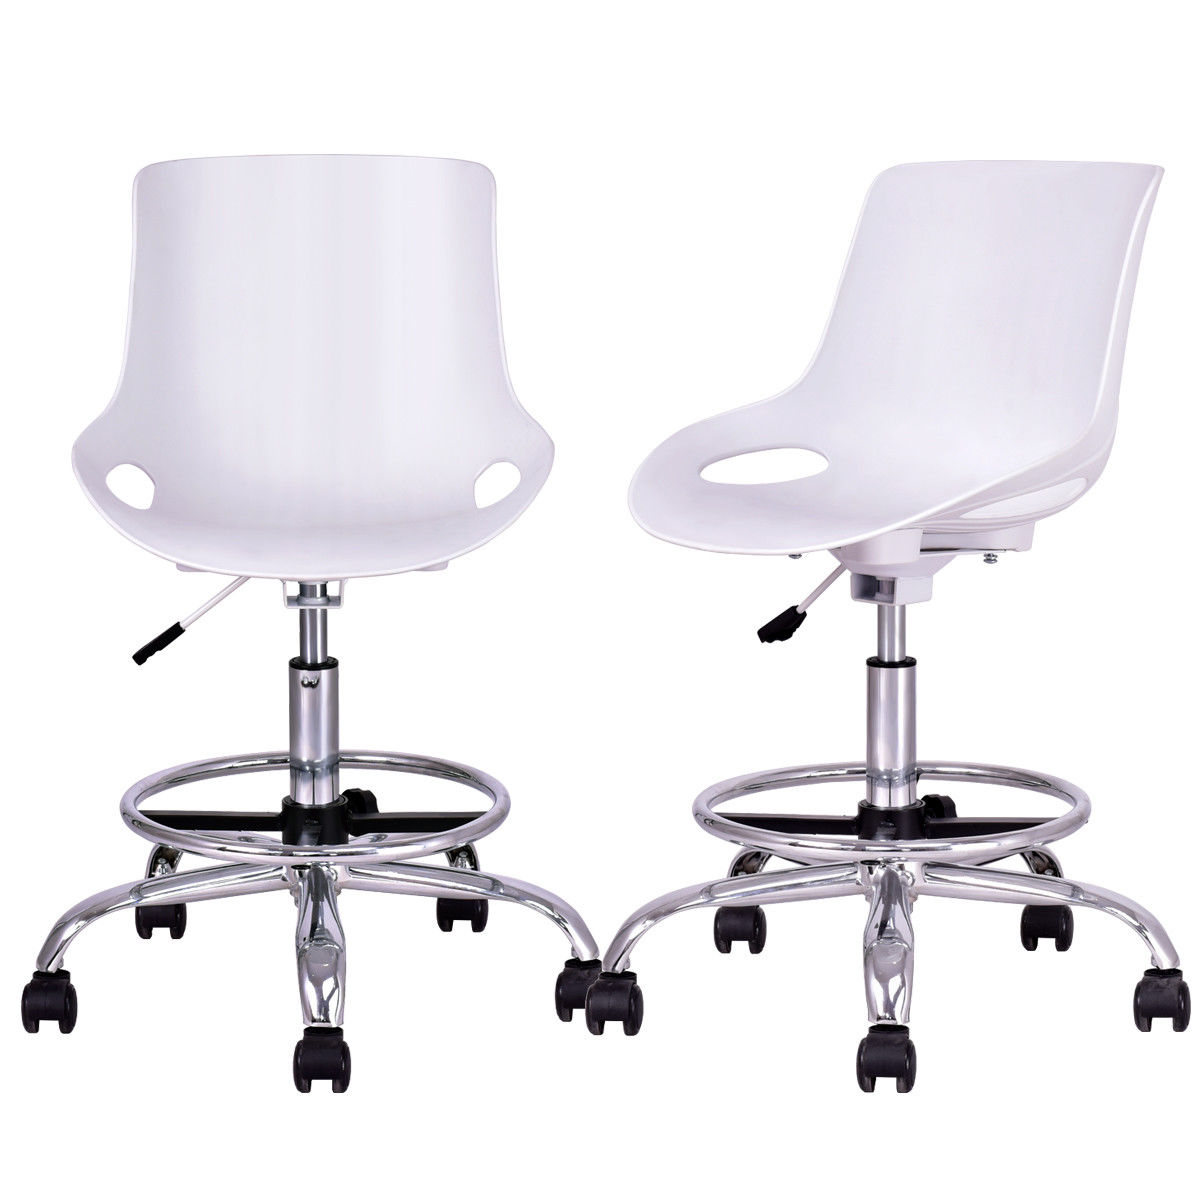 Giantex Set of 2pcs Armless Desk Chair PP Swivel Height Adjustable Office Chair Modern Home Furniture with Footrest HW56382WH